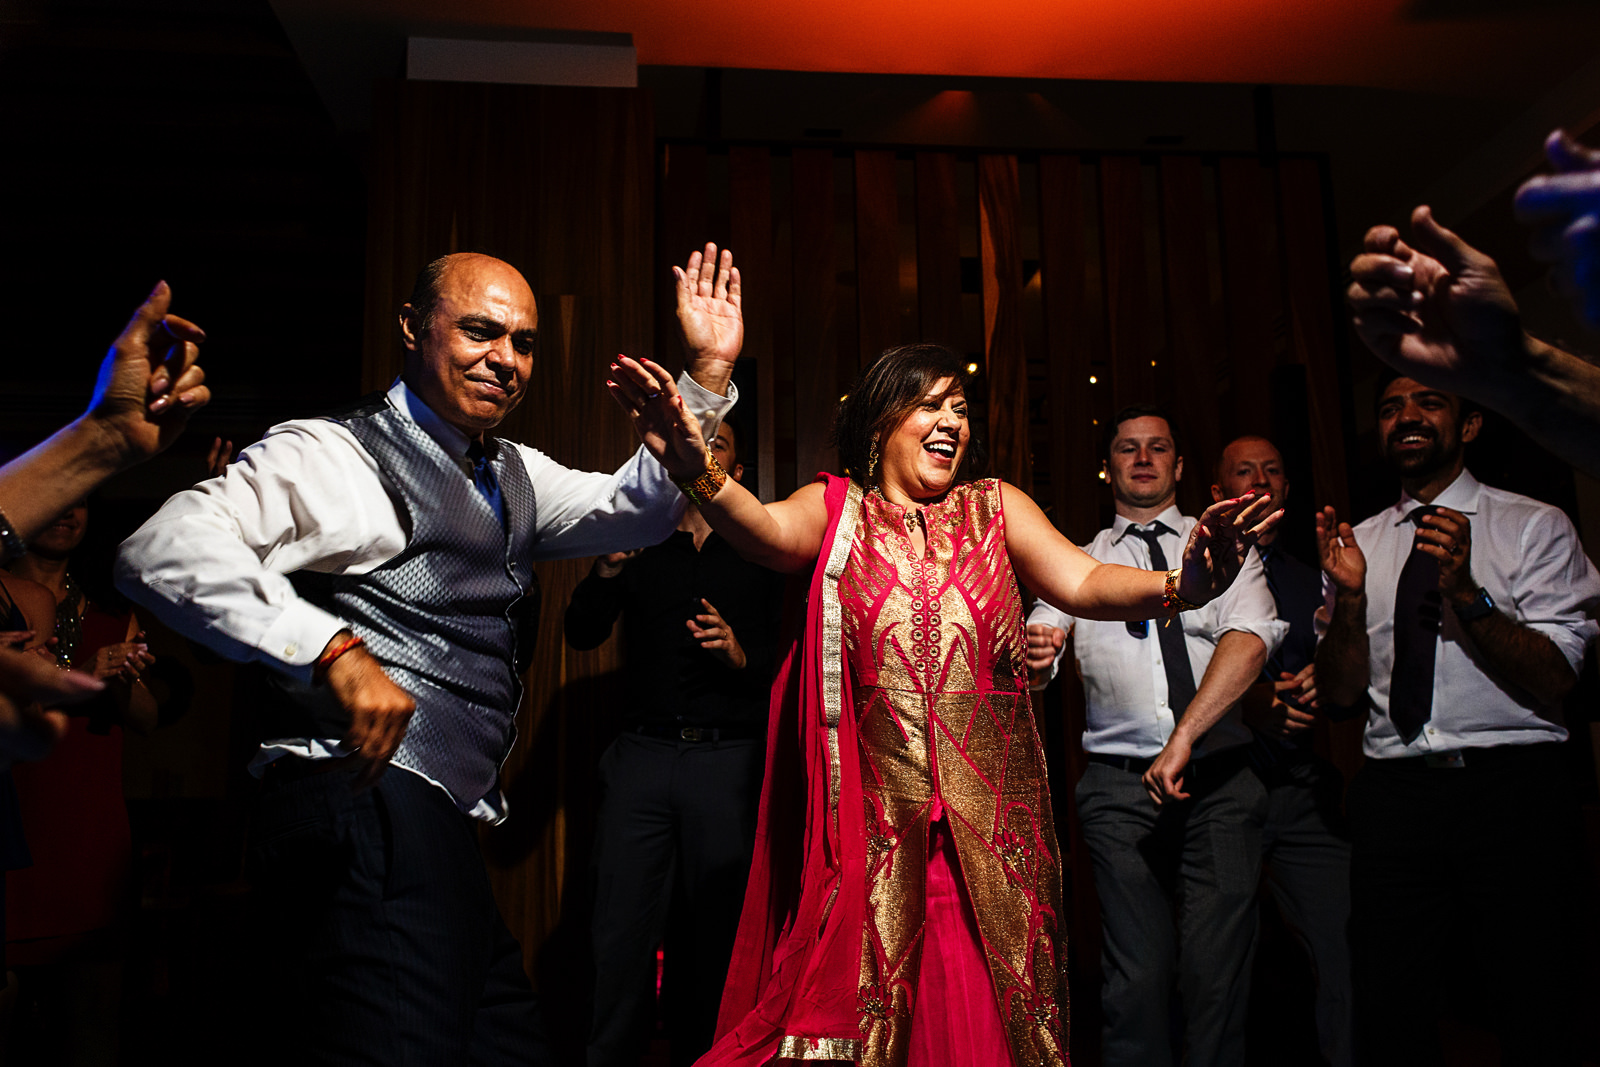 Family and guests dance at the hindu wedding party